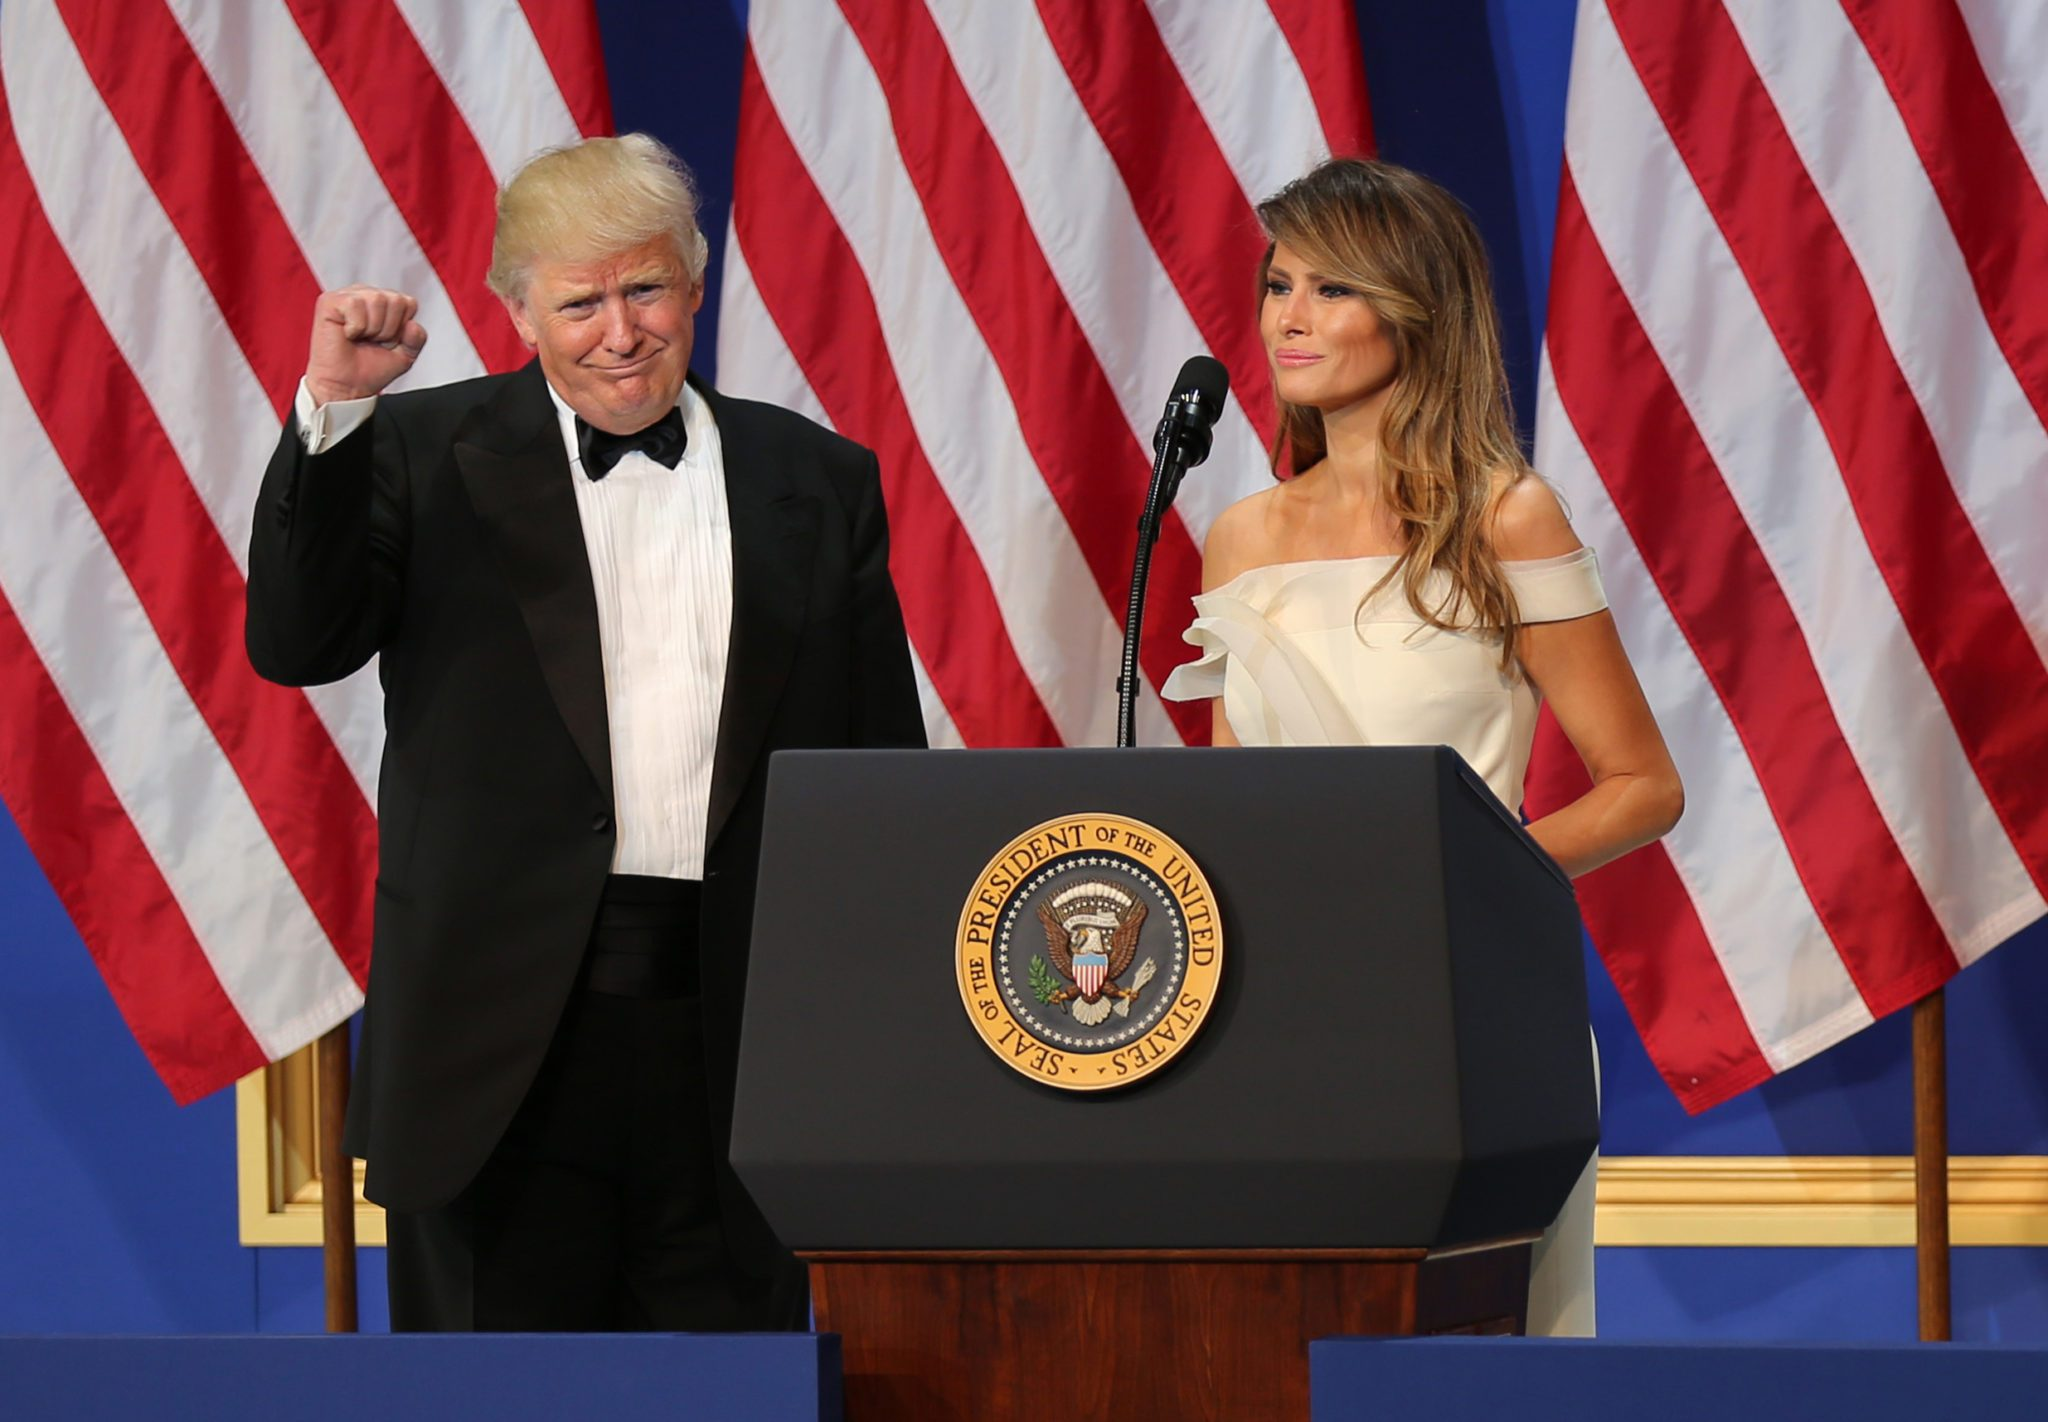 President Donald J. Trump celebrates the First Lady Melania Trump's speech at the Salute to Our Armed Services Ball at the National Building Museum, Washington, D.C., Jan. 20, 2017. The event, one of three official balls held in celebration of the 58th Presidential Inauguration, paid tribute to members of all branches of the armed forces of the United States, as well as first responders and emergency personnel. (DoD photo by U.S. Army Sgt. Kalie Jones)